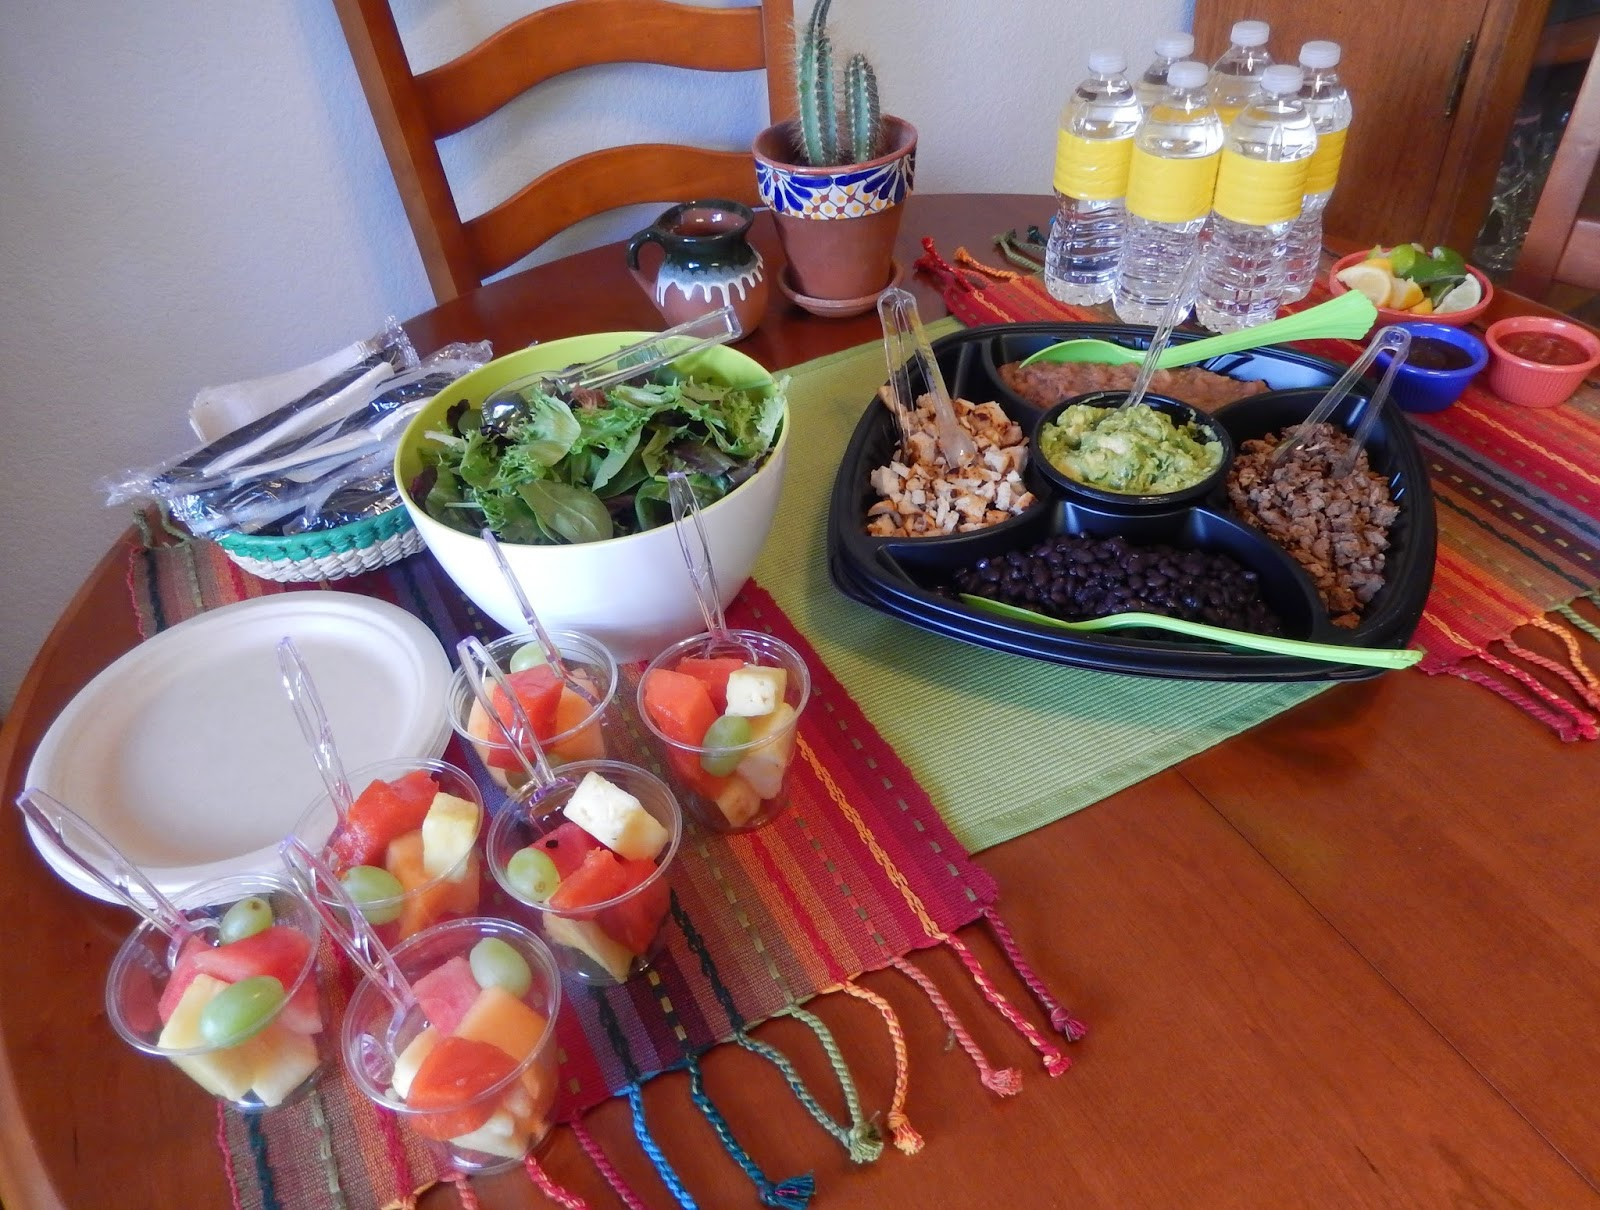 Mexican%2BFiesta%2BMeeting%2BLuncheon%2BBrunch%2BCinco%2Bde%2BMayo%2BRubios%2BEggface%2B2 Weight Loss Recipes Healthy Meetings (or Parties) Made Easy